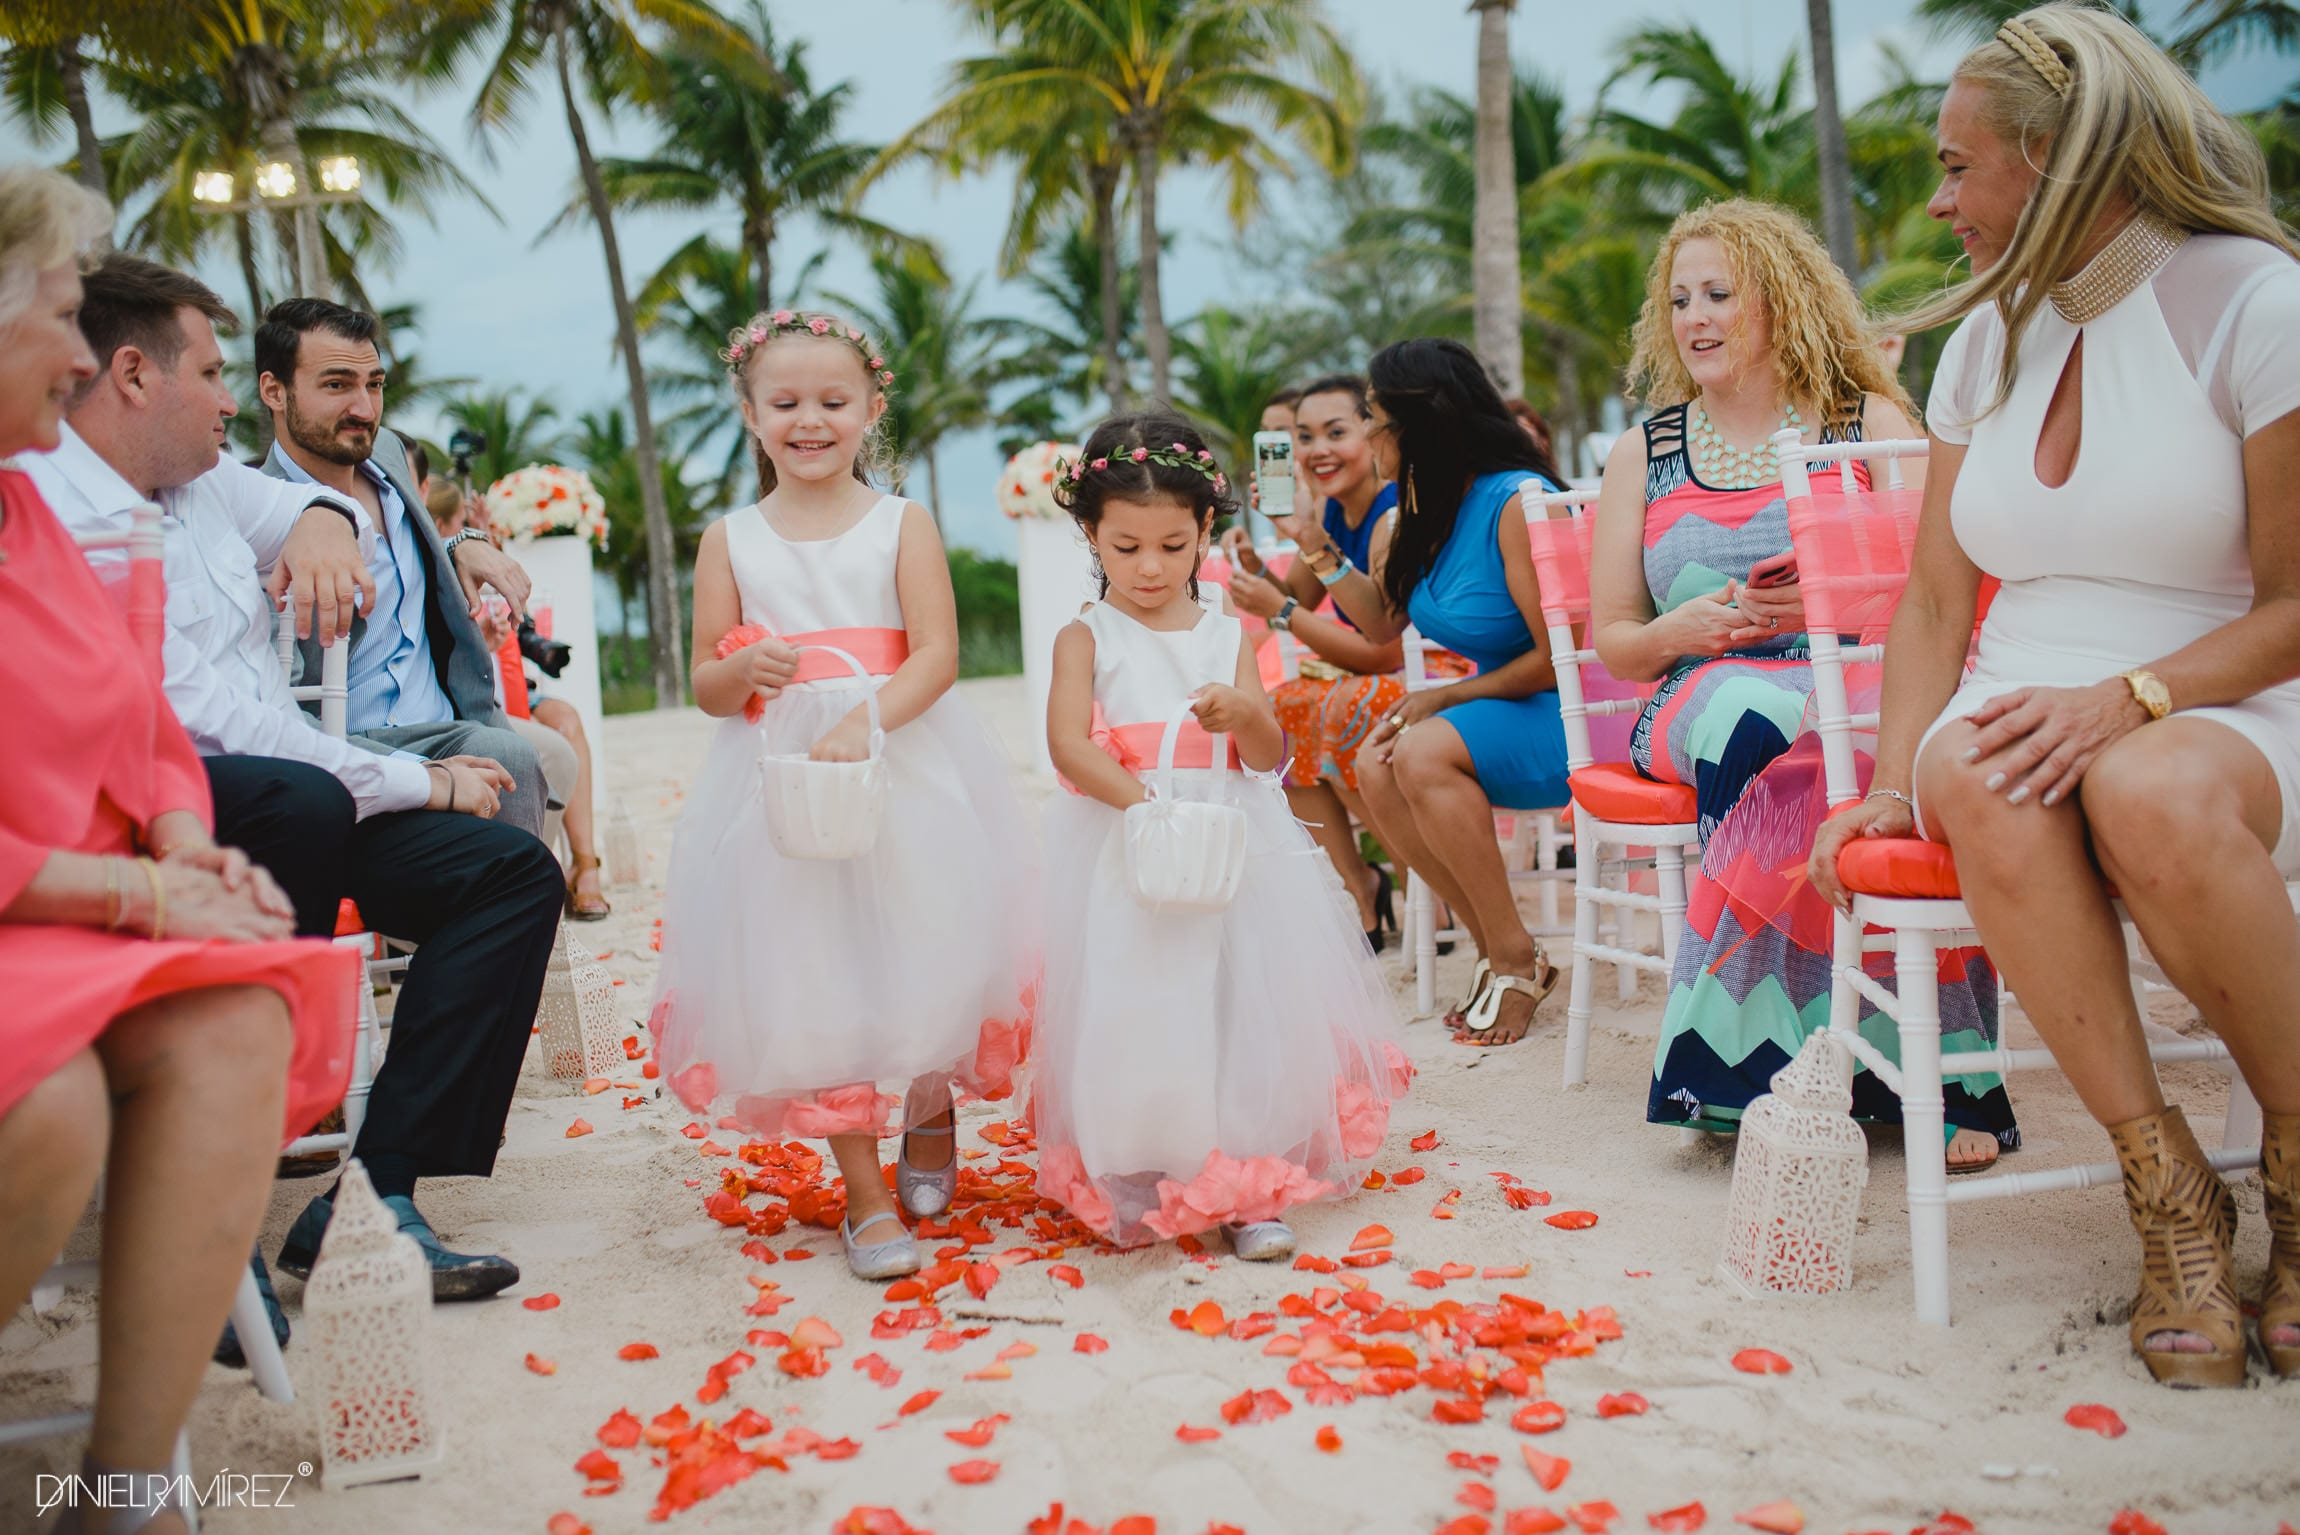 playa azul barcelo photos wedding